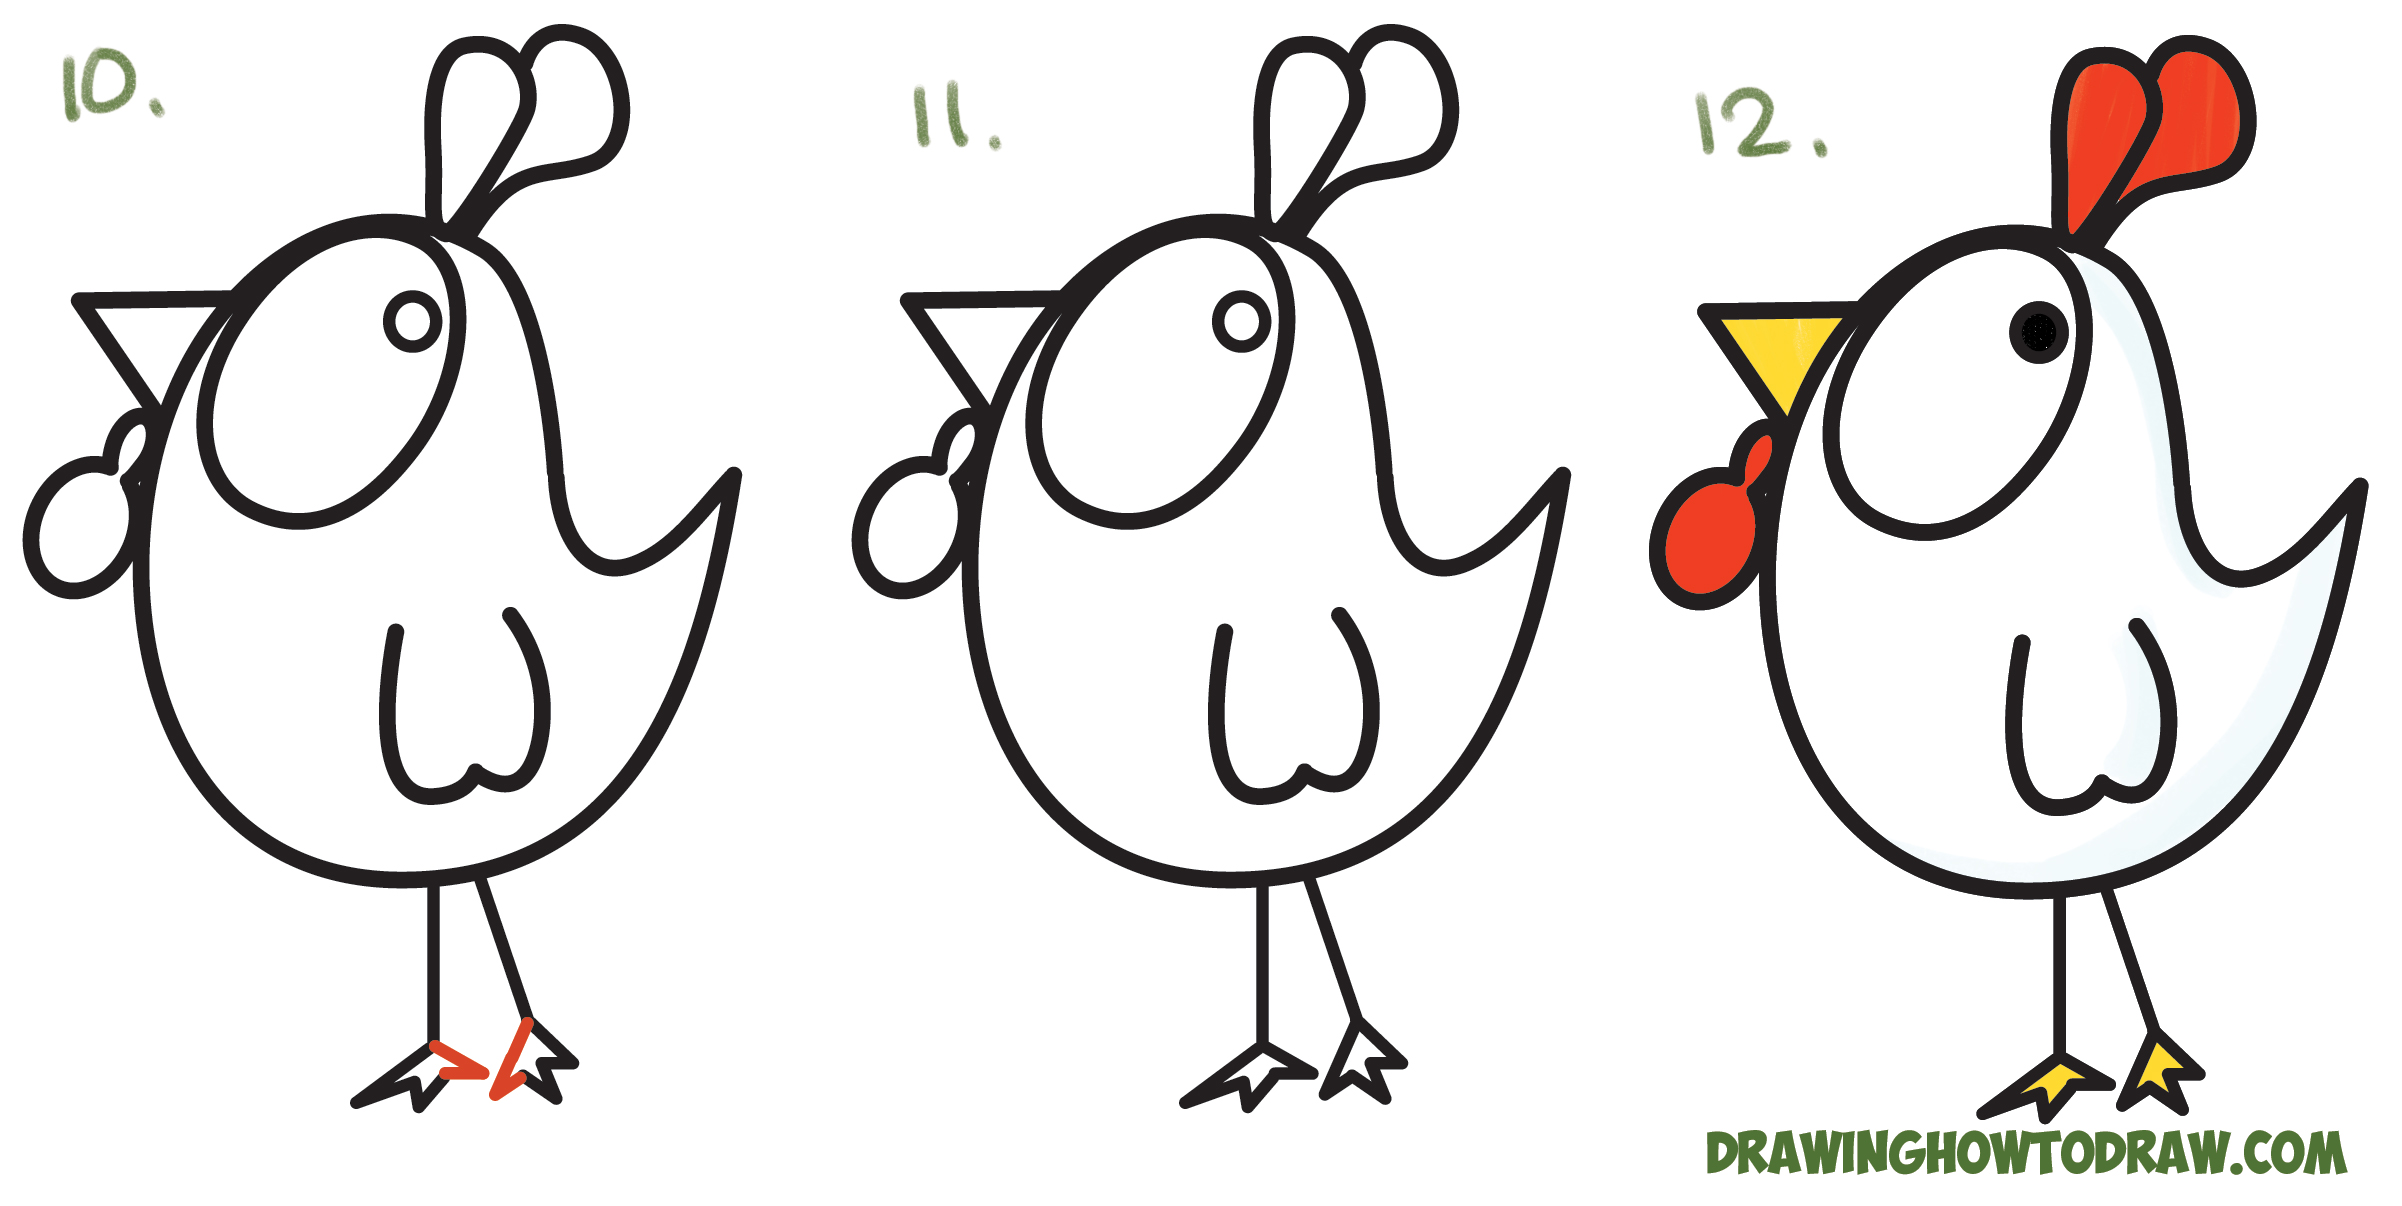 How to Draw a Cartoon Chicken / Rooster from ? and